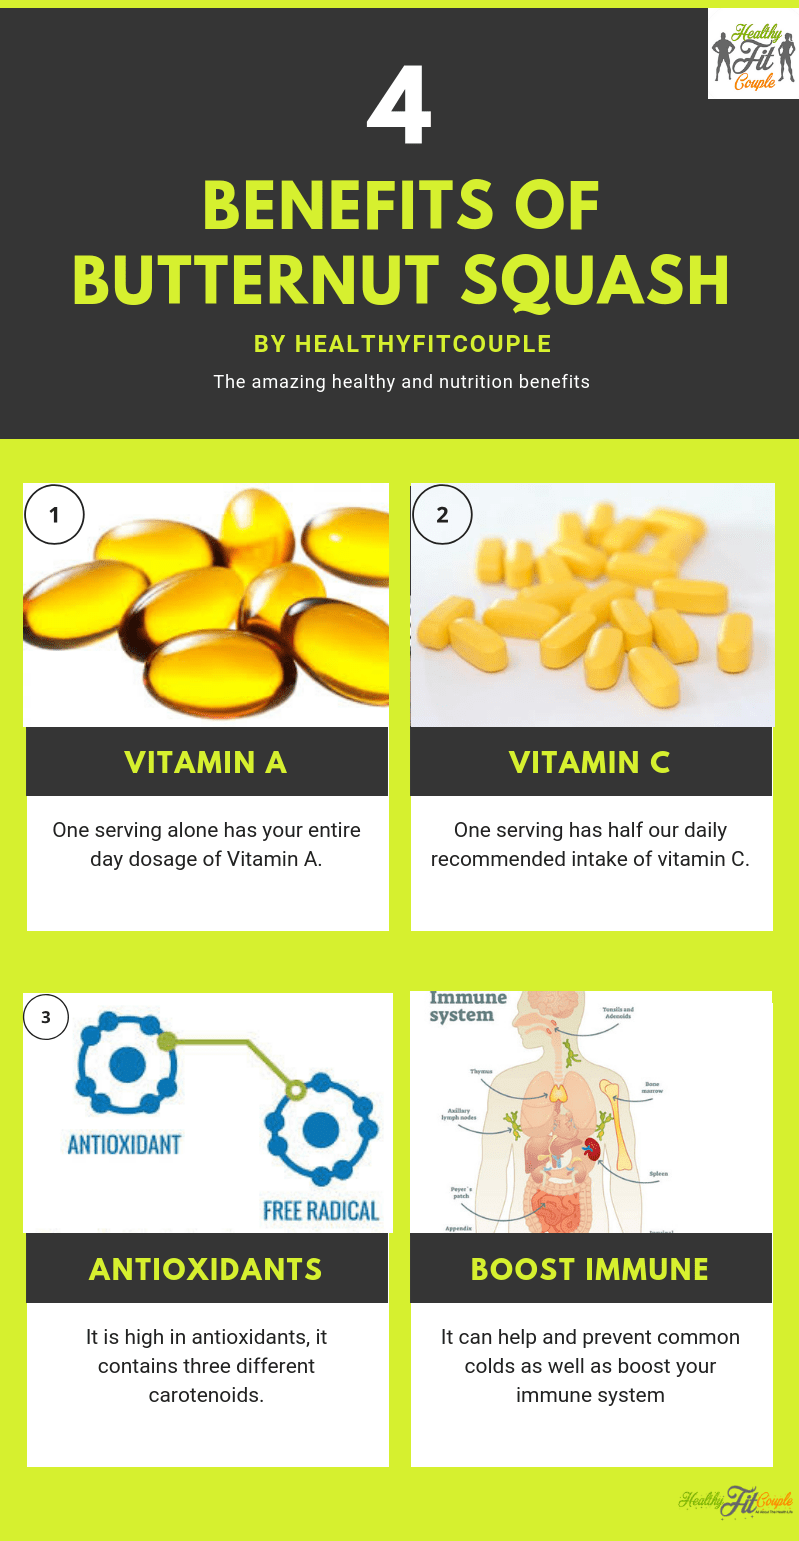 Benefits of Squash infographic